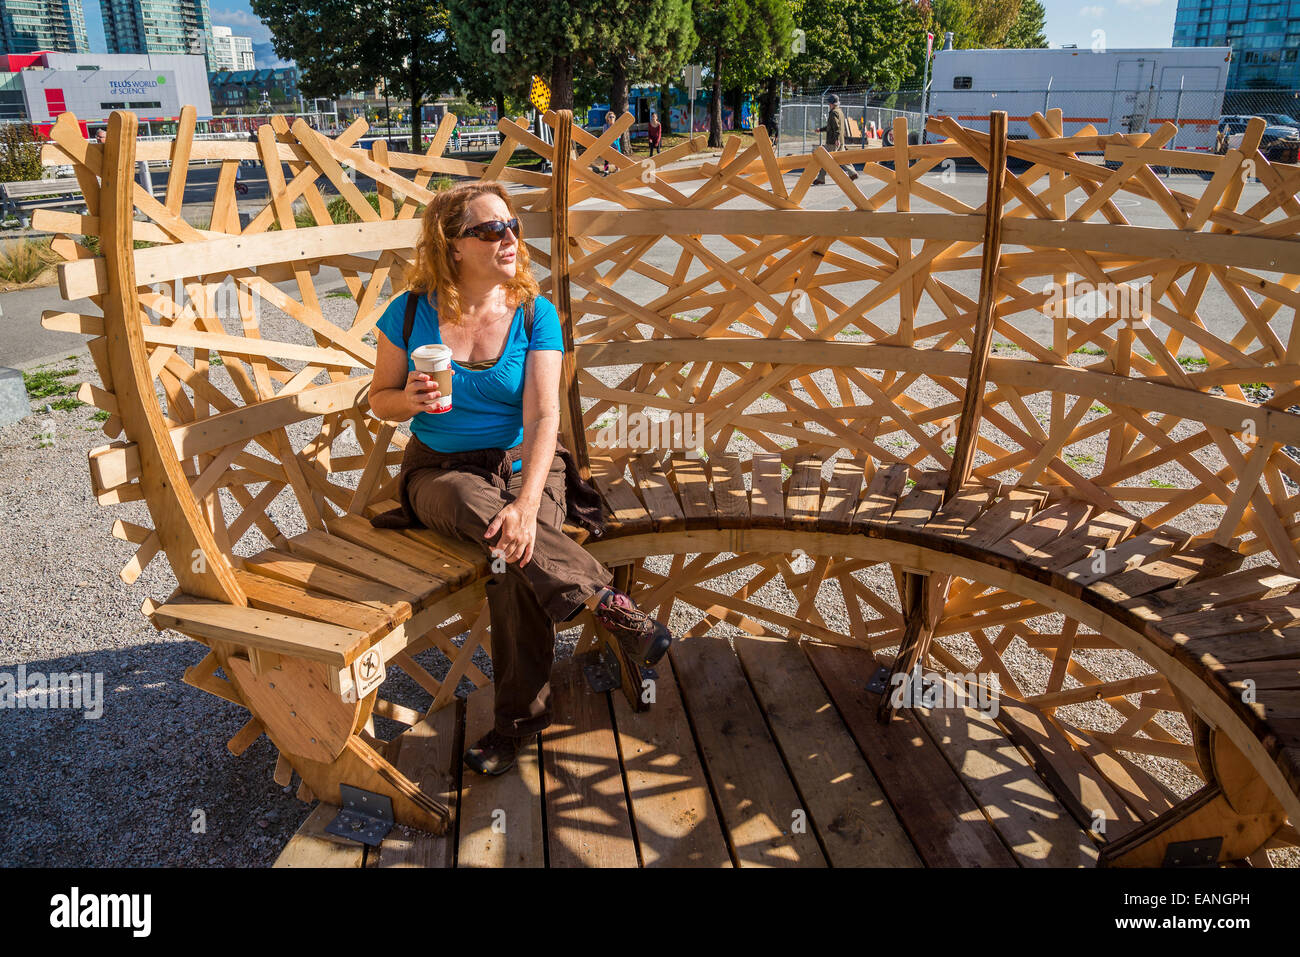 Woman enjoying coffee in spherical lattice enclosed park bench, False Creek, Vancouver, British Columbia, Canada - Stock Image